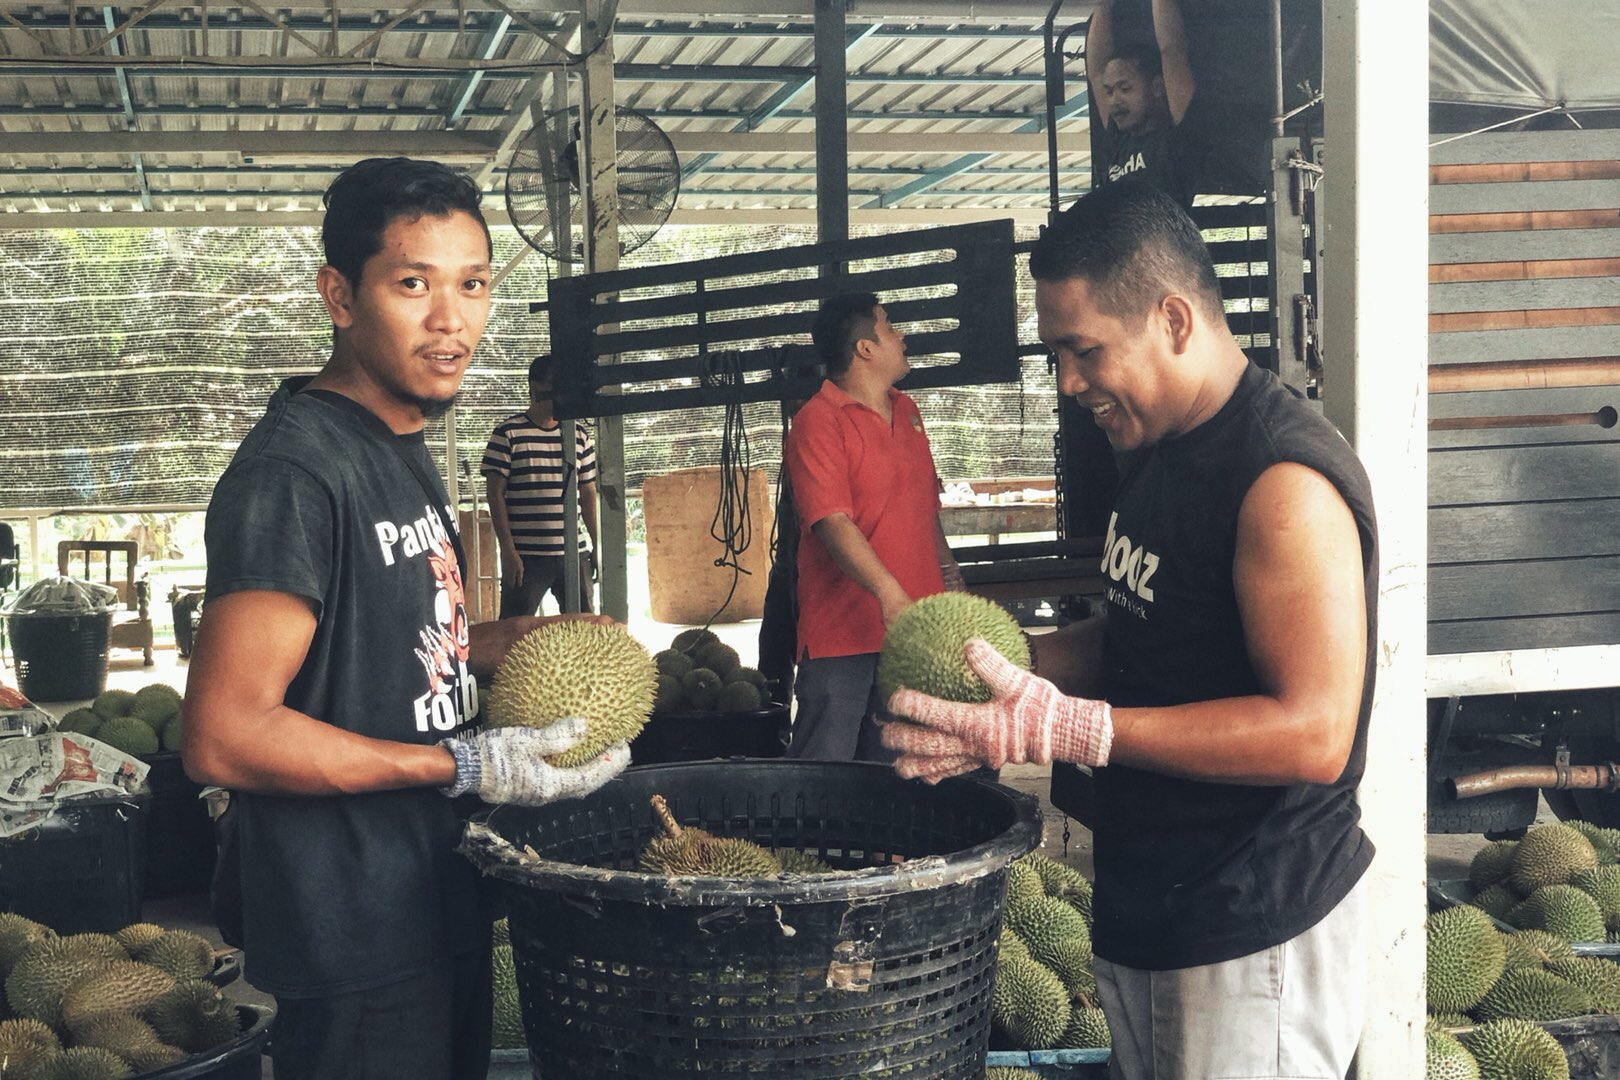 Malaysian durian aims at the Chinese market